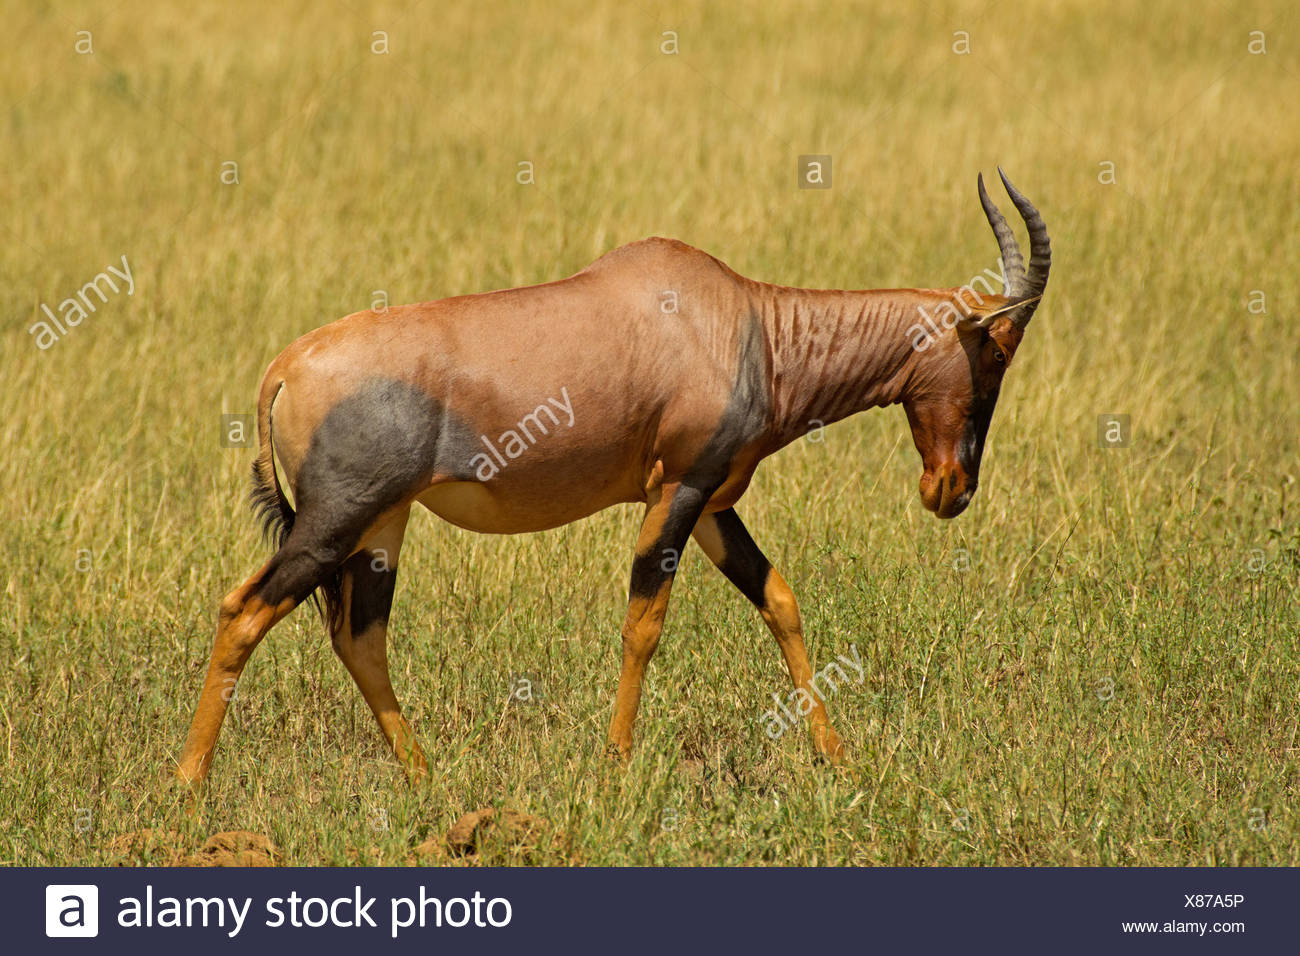 Topi Walking in Red Oat Grass of the Serengeti - Stock Image